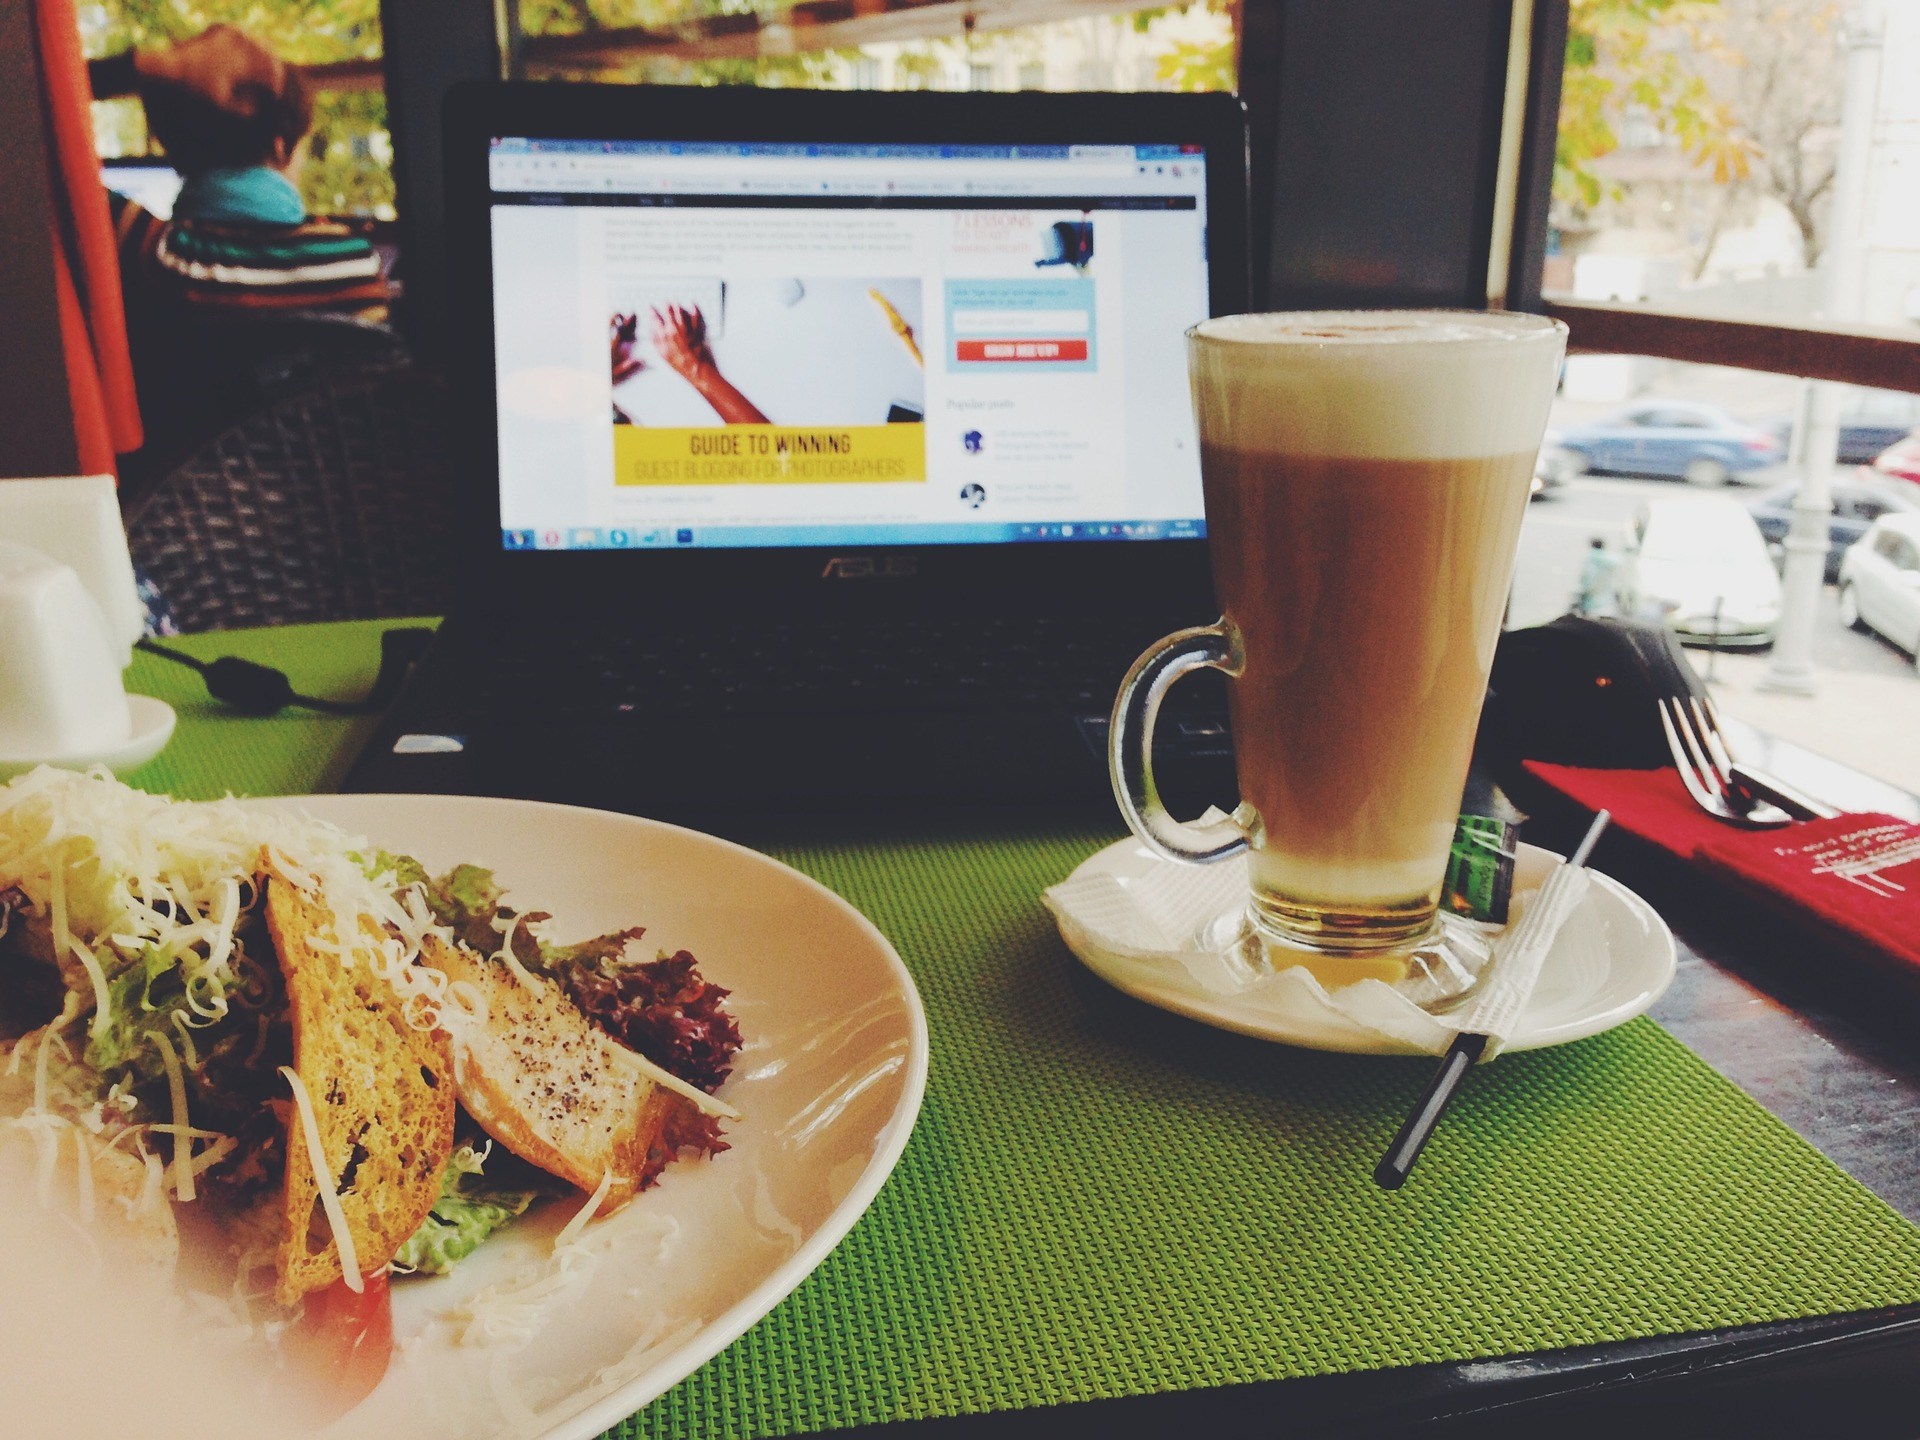 """ Cafe, Lunch, Coffee, Laptop, Food, Latte "" by  StockSnap  is  public domain ."